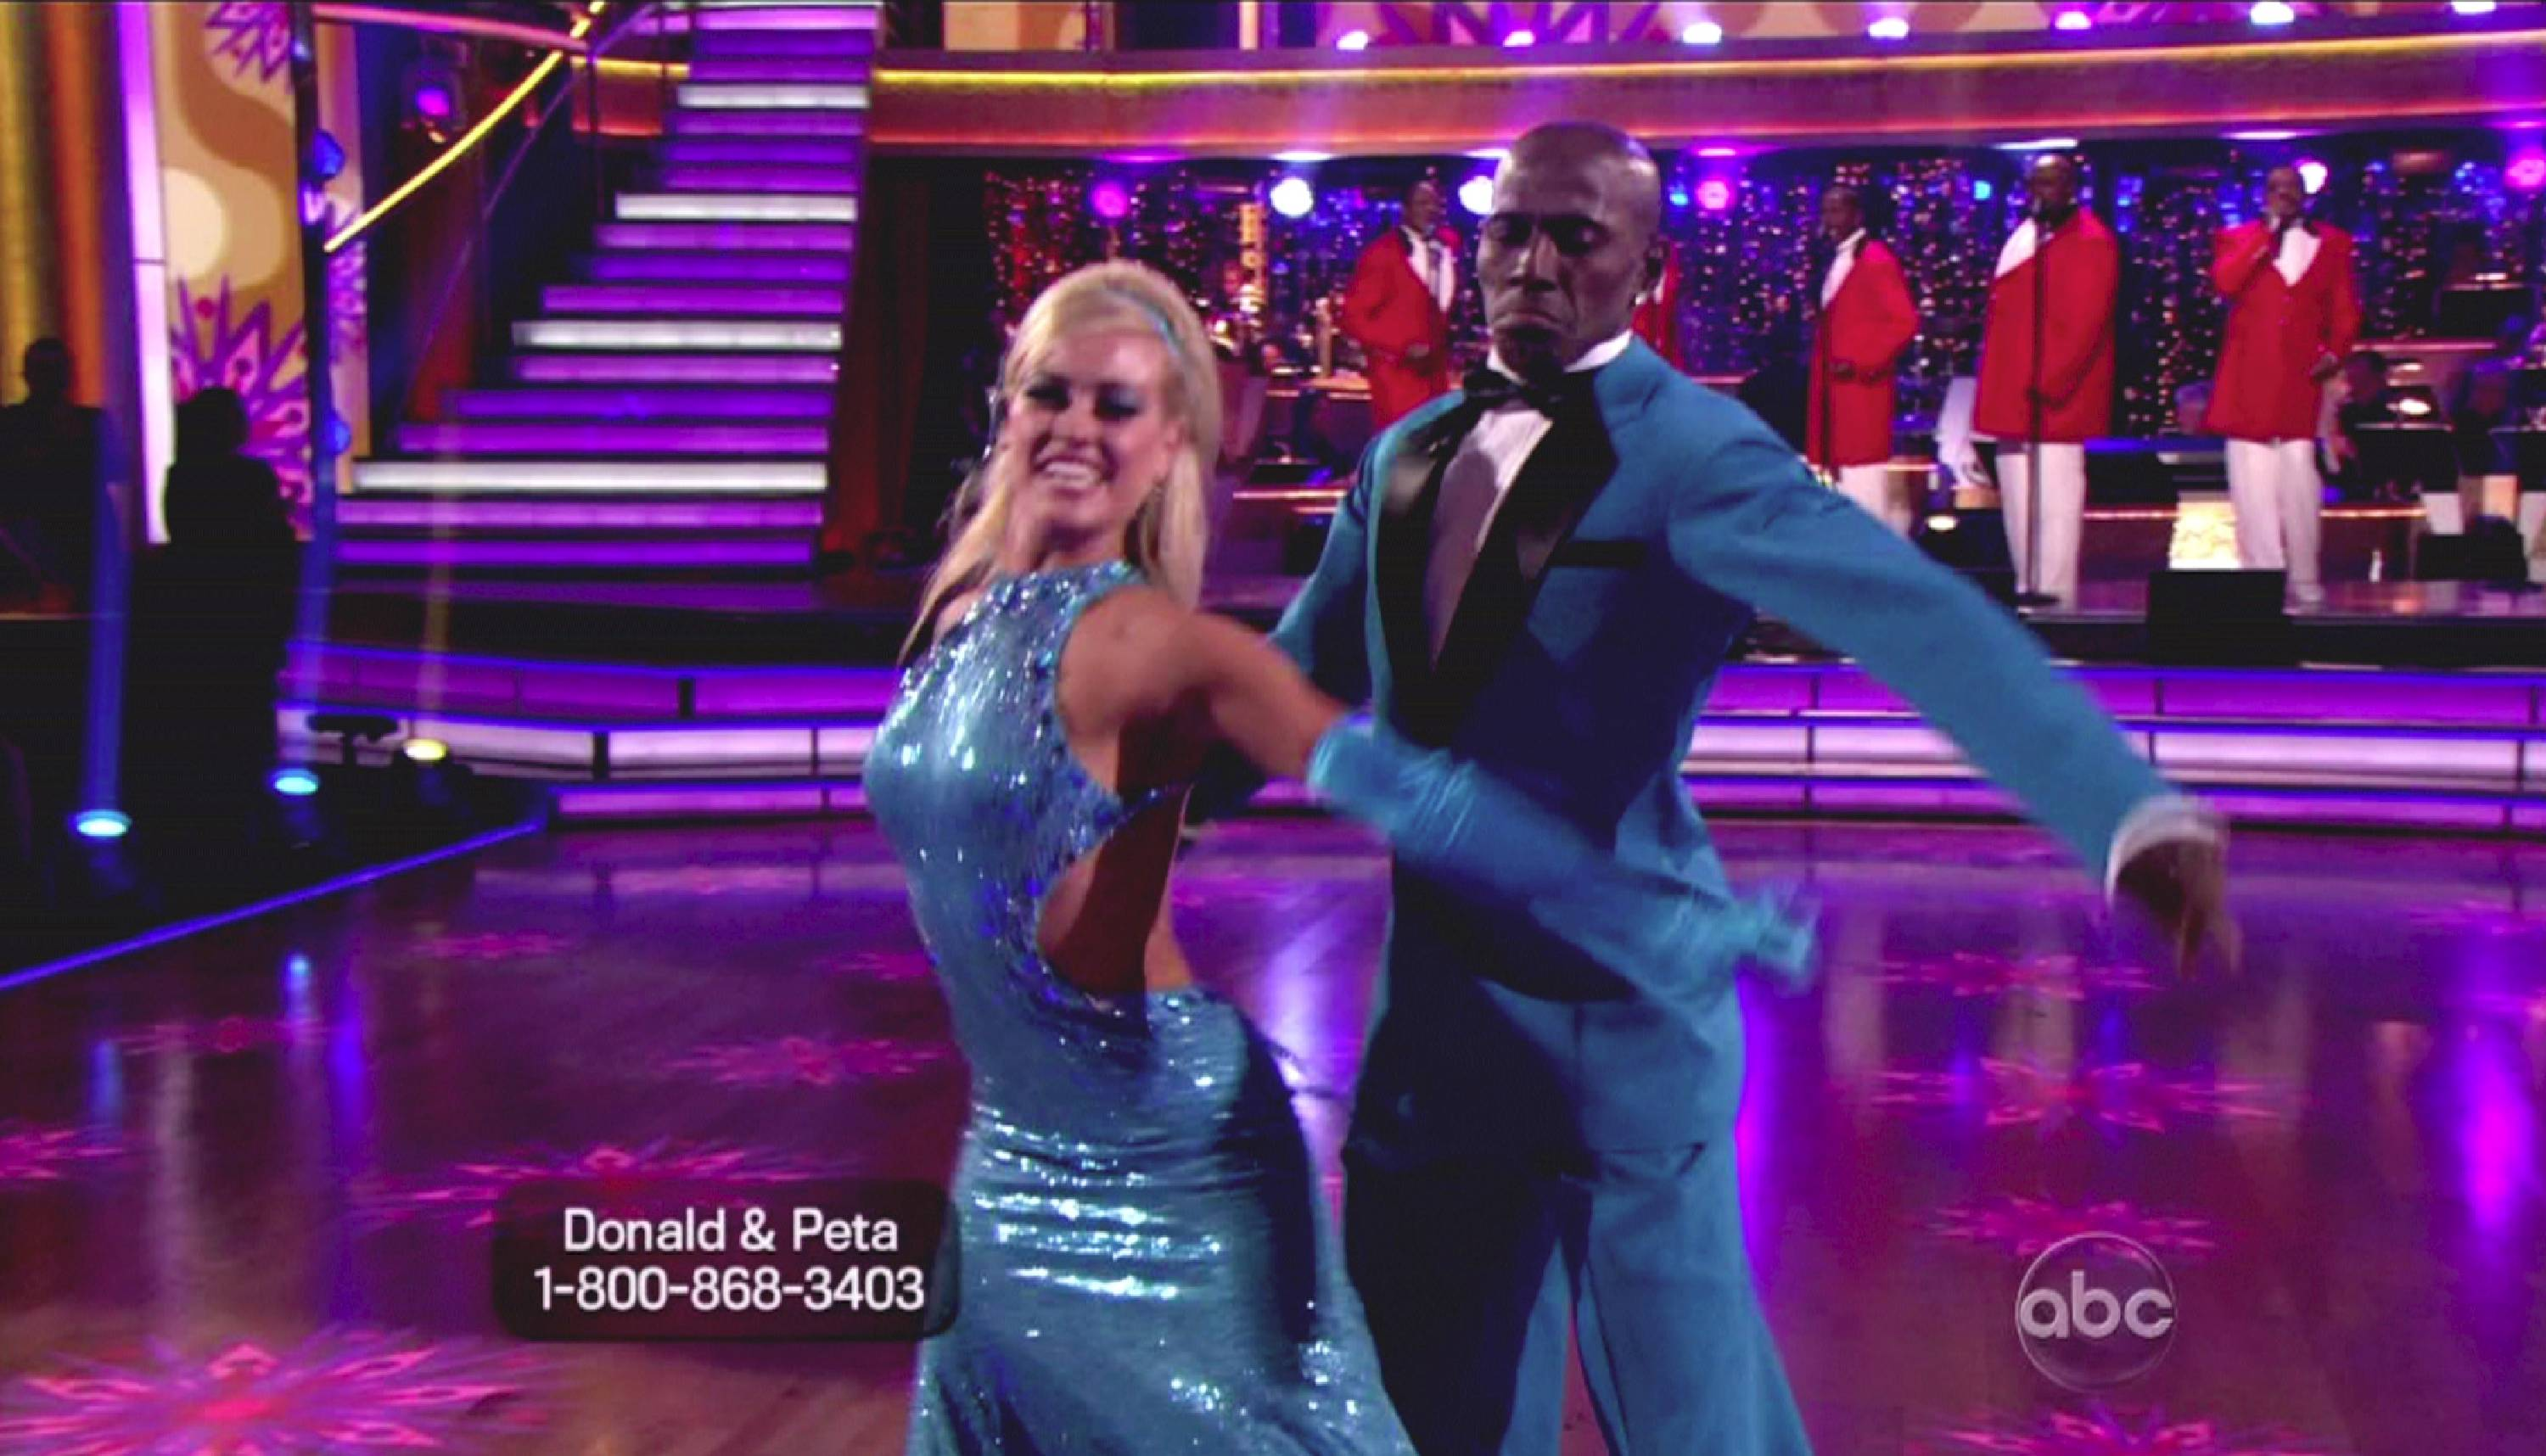 'Dancing With the Stars' Week 6 Recap: The Top Five Dances